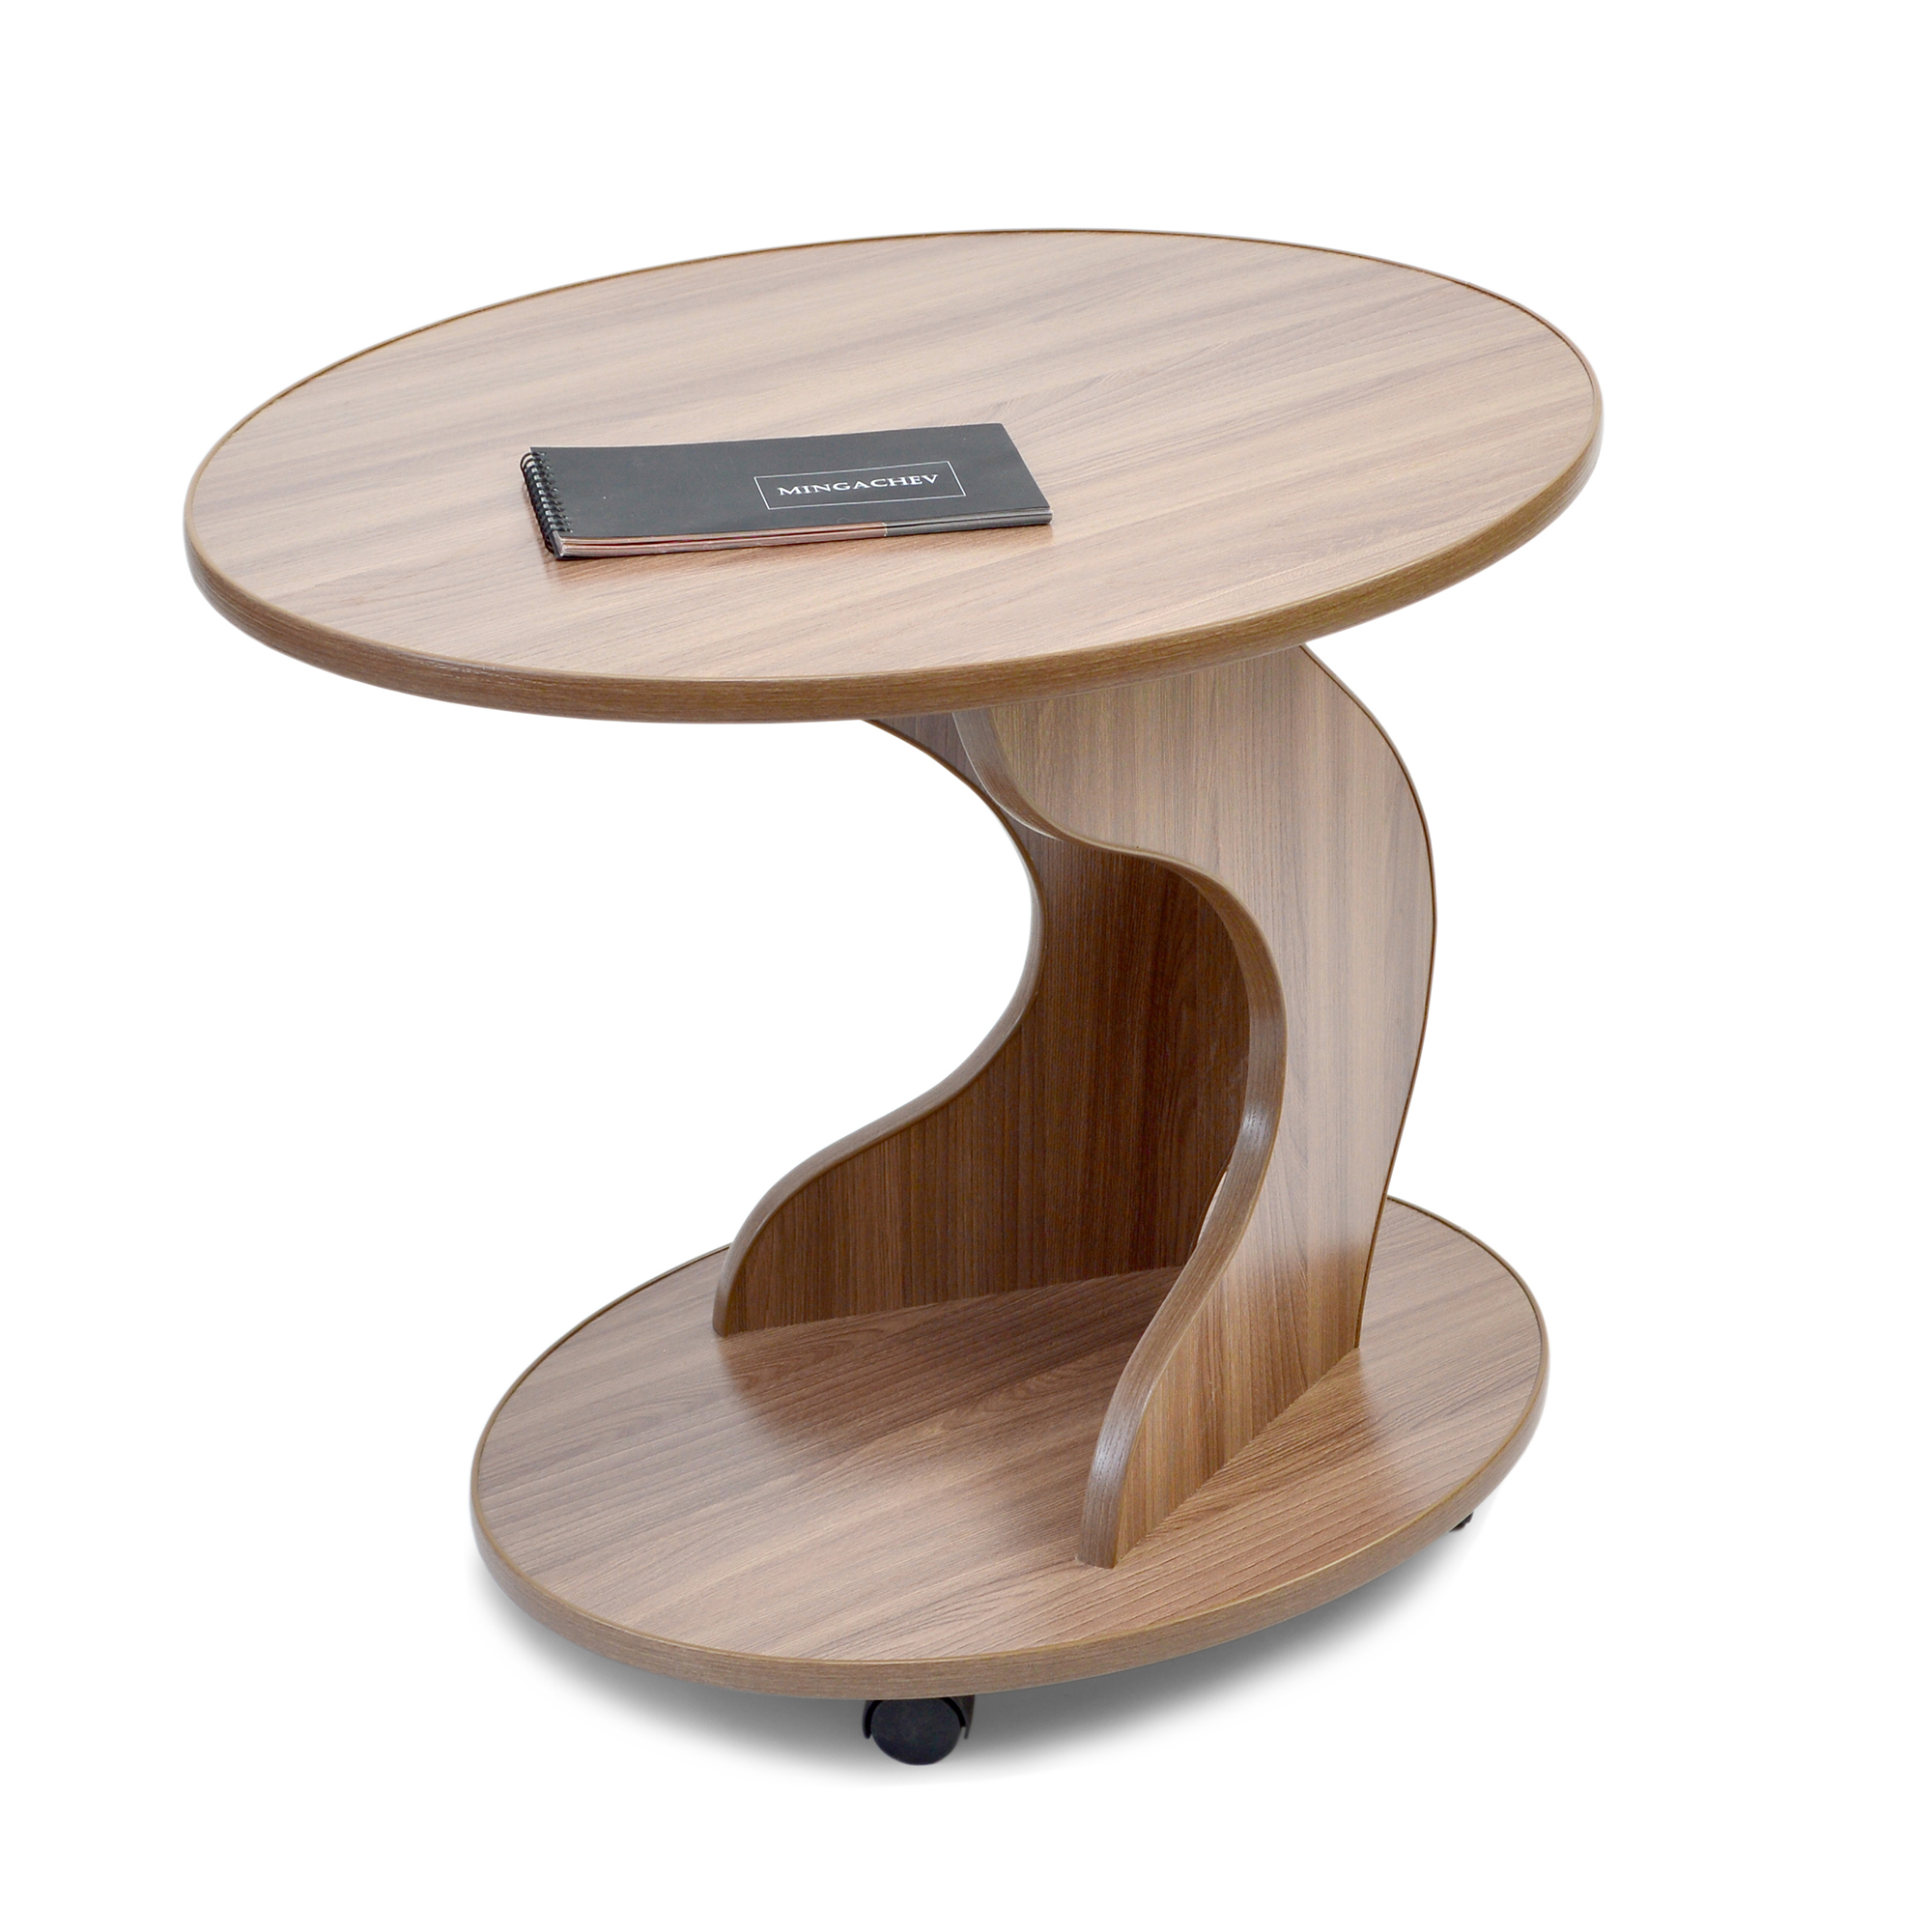 Roll-serving Table, Savva On Wheels. Furniture For The Living Room, Kitchen, Bedroom. Bedside\computer\kitchen Table On Wheels.